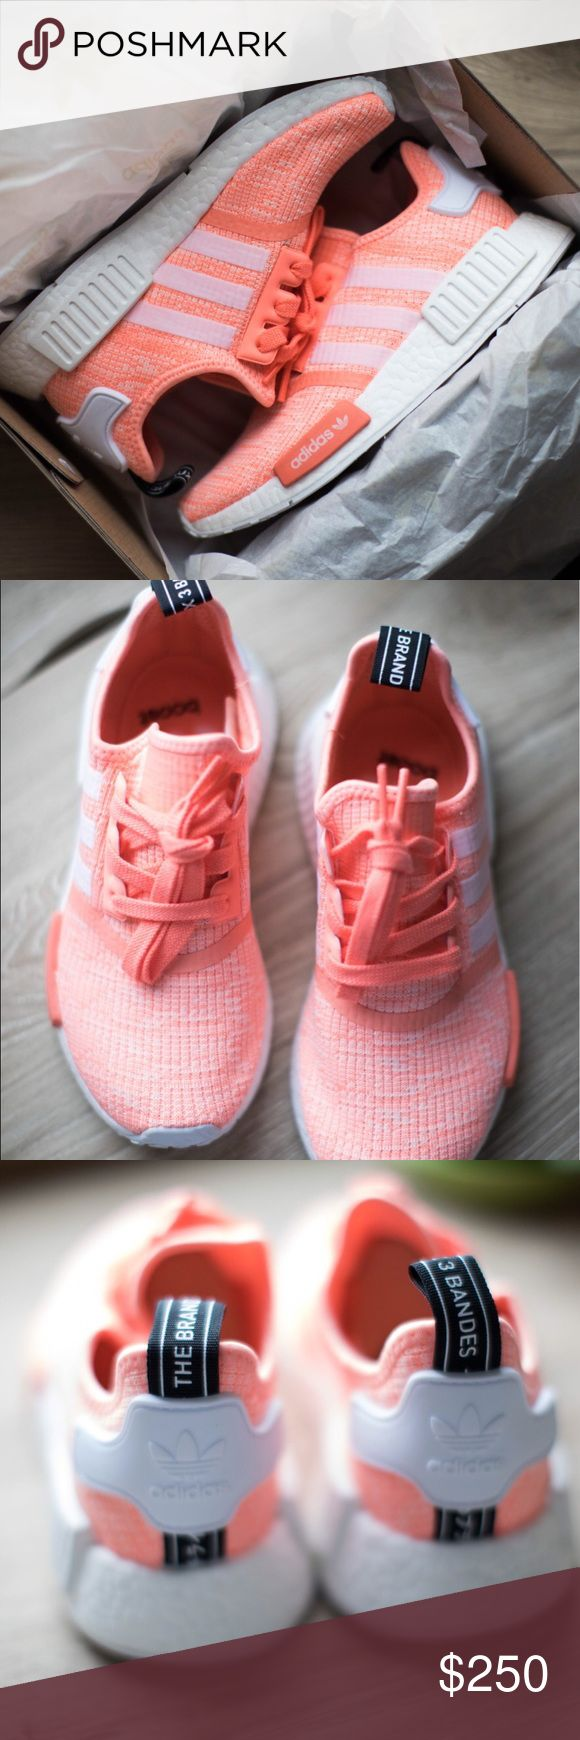 Adidas NMD Shoes Brand new, never worn authentic women's originals Adidas NMD_R1 Shoes in Sun Glow/Running White. Size 5.5. No trades. Comes in original box. Price negotiable, make me your best offer! *SAVE MONEY BY PURCHASING ON DE💥!* Comment below if interested! ☺️* Adidas Shoes Sneakers